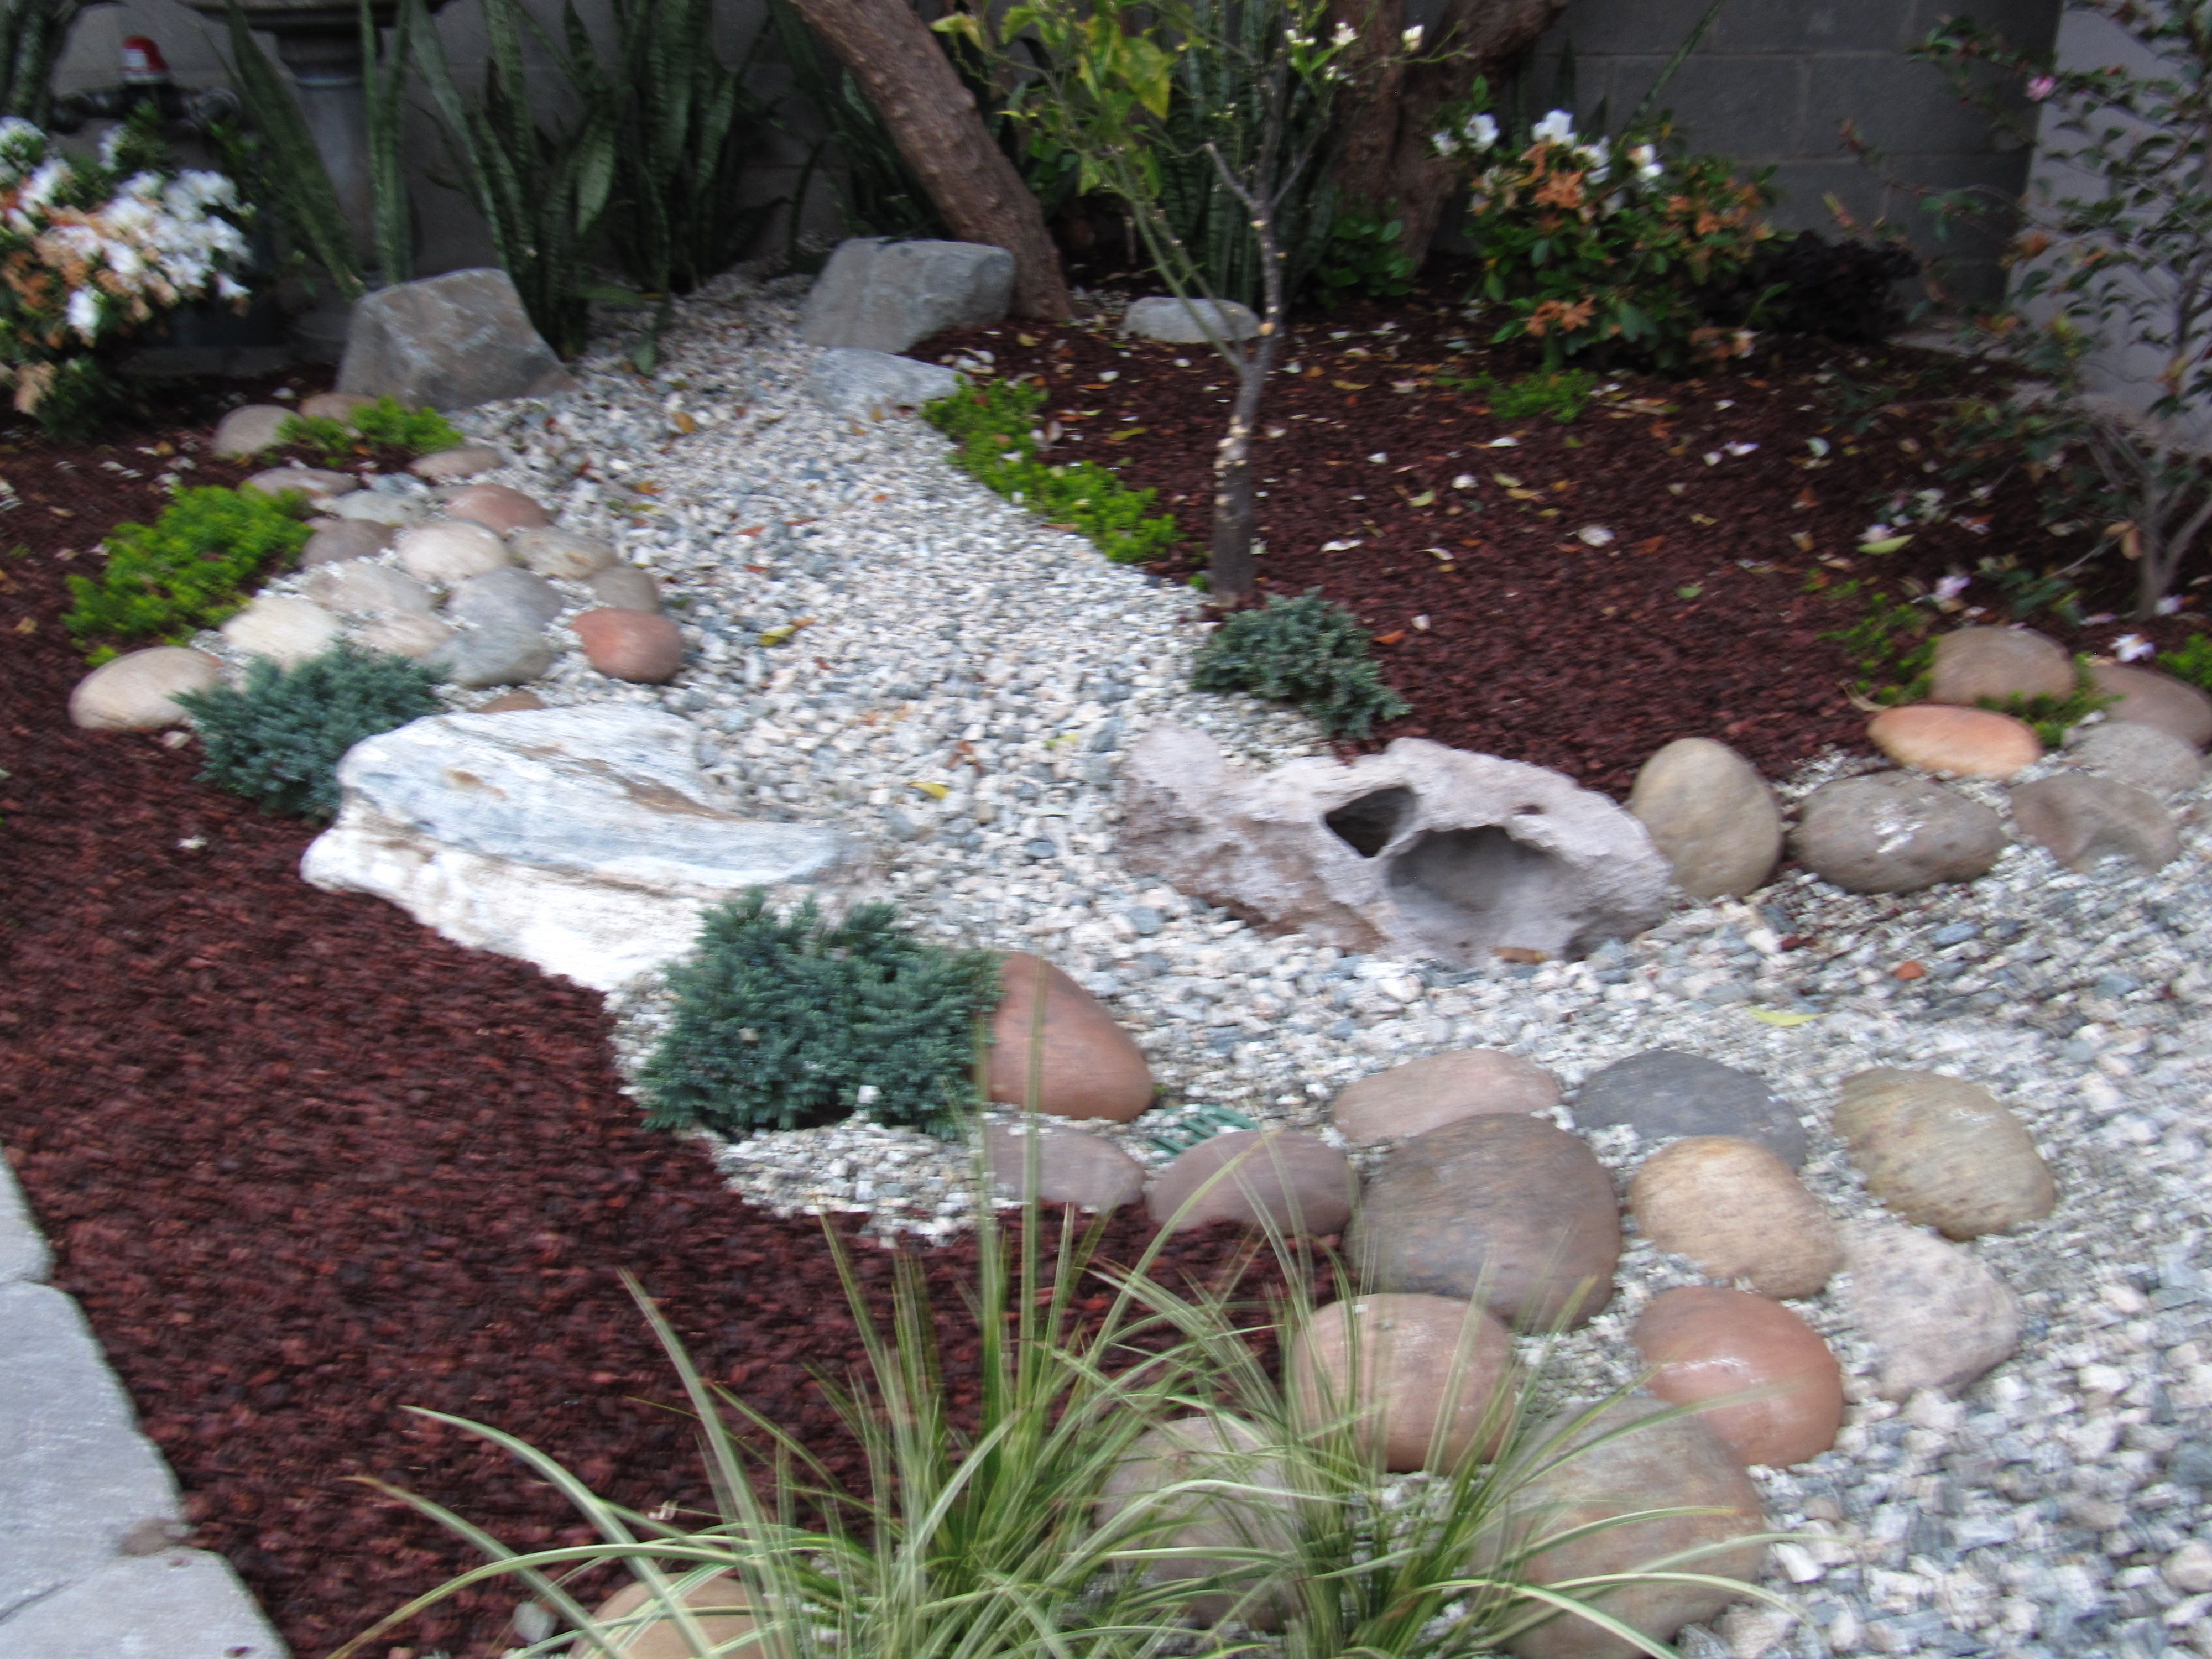 Pictures Of Yards With Dry River Beds Dry River Bed Backyard